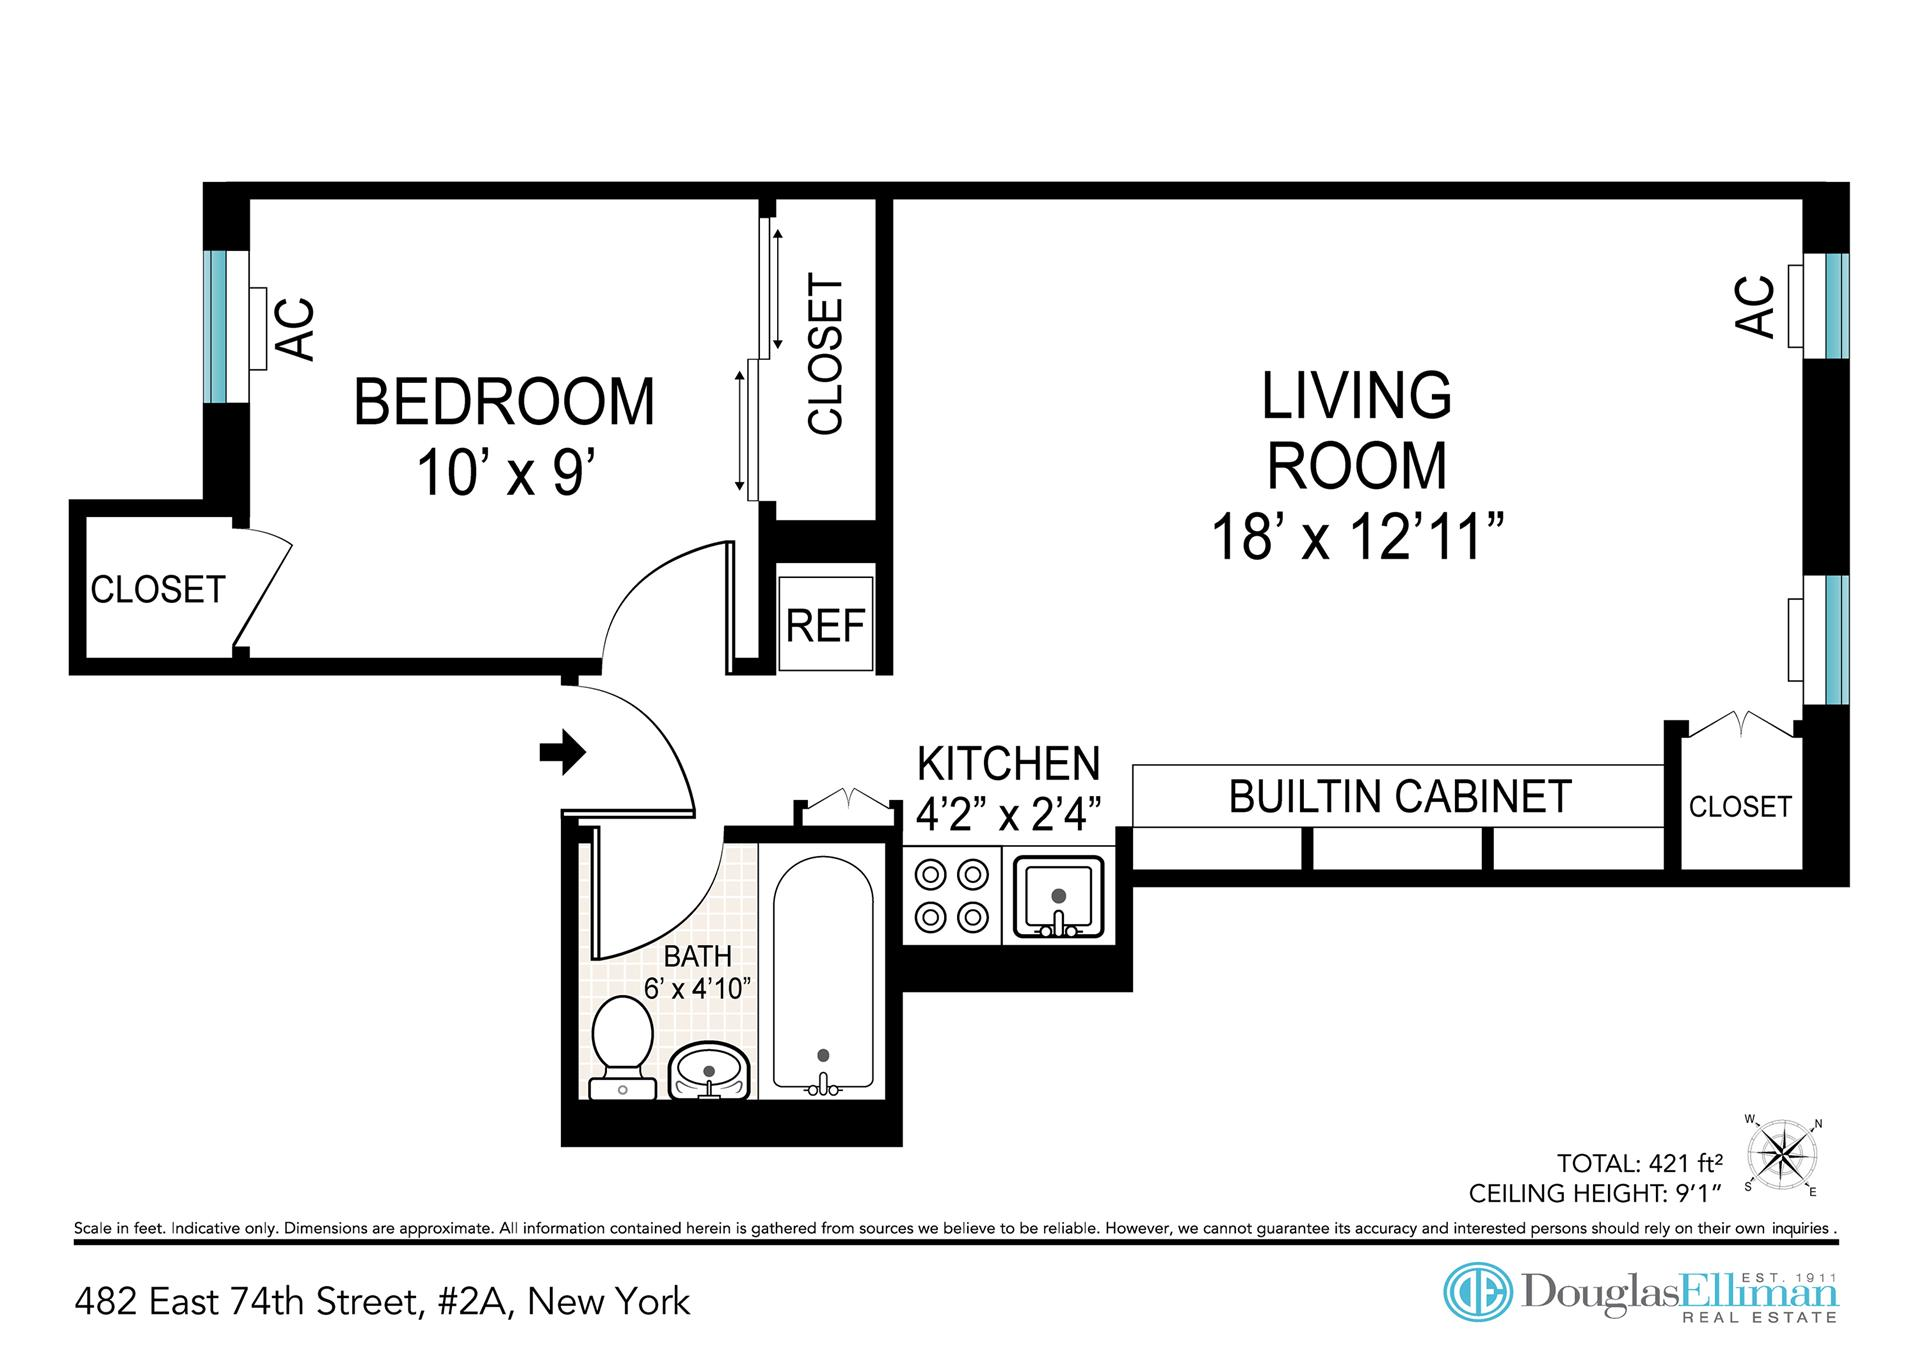 Floor plan of 482 East 74th St, 2A - Upper East Side, New York